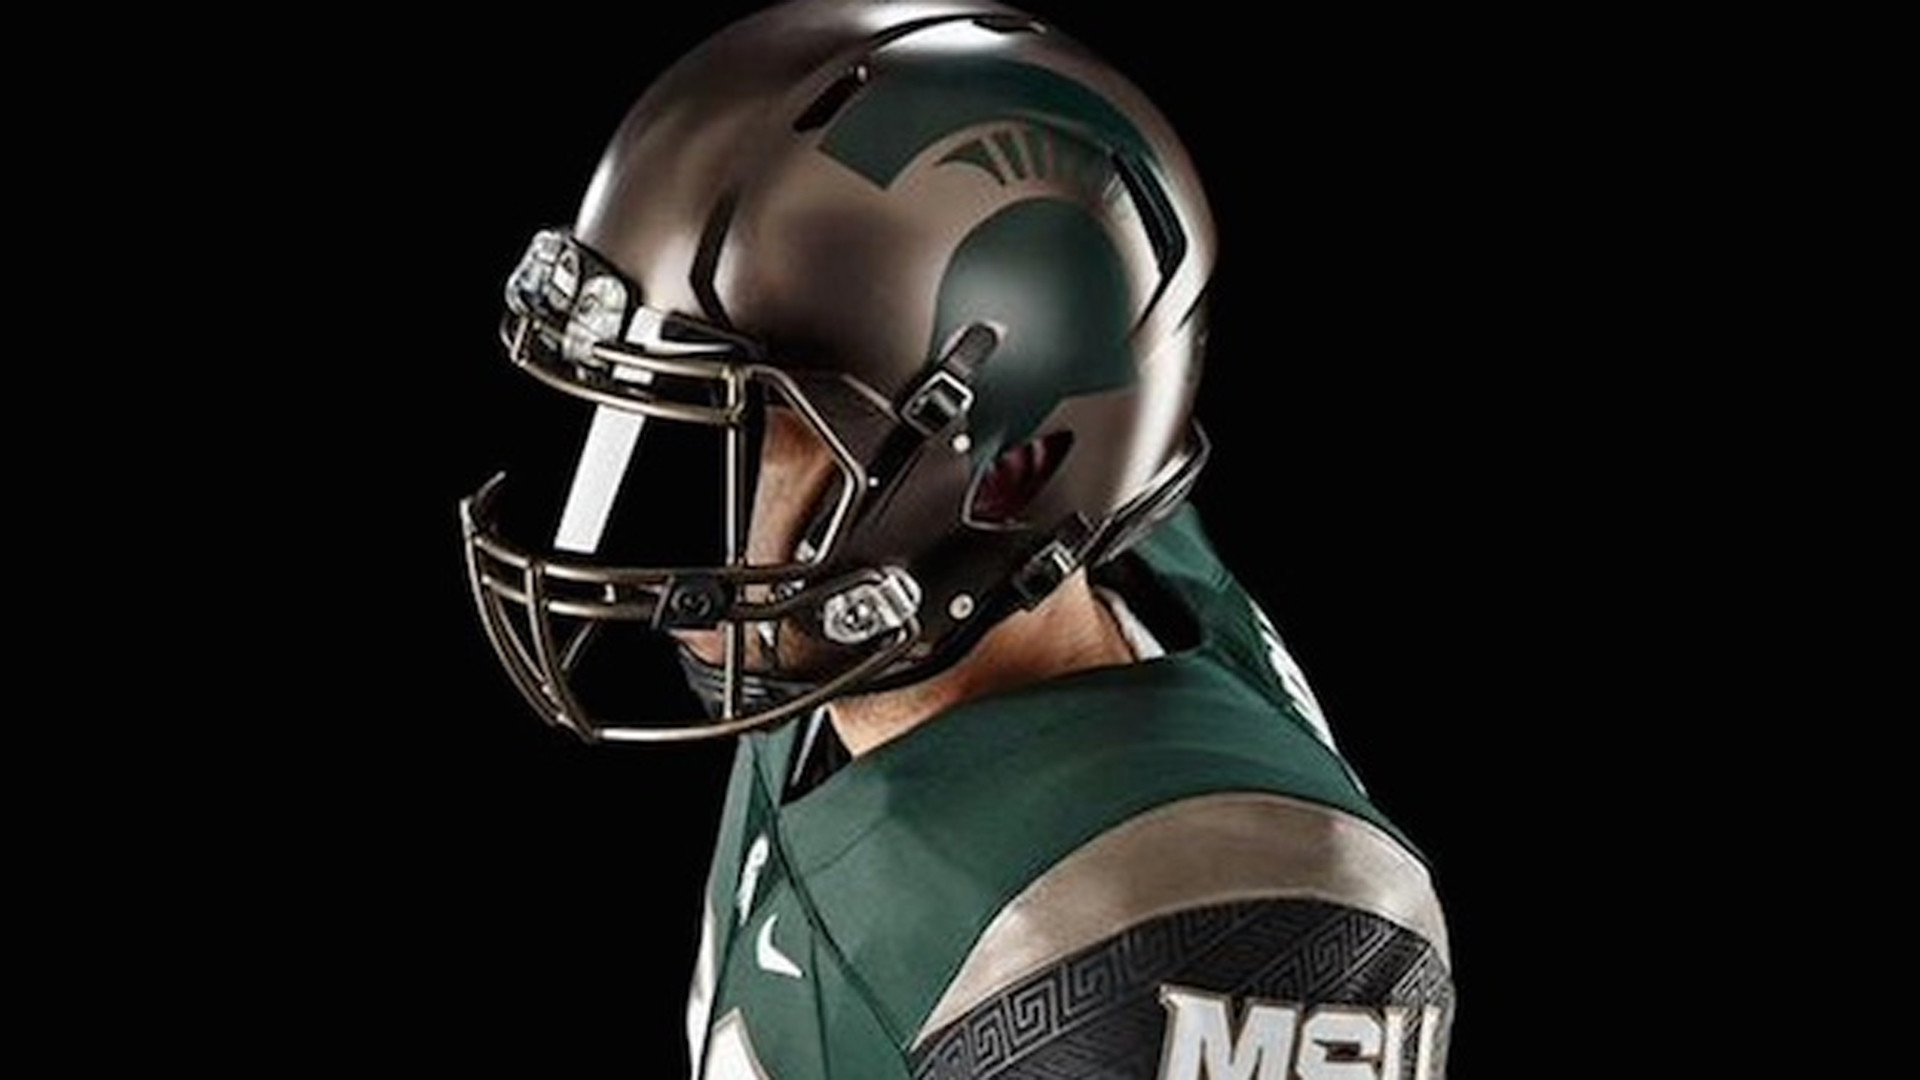 Michigan State's new alternate uniforms inspired by ancient battle  formation | NCAA Football | Sporting News